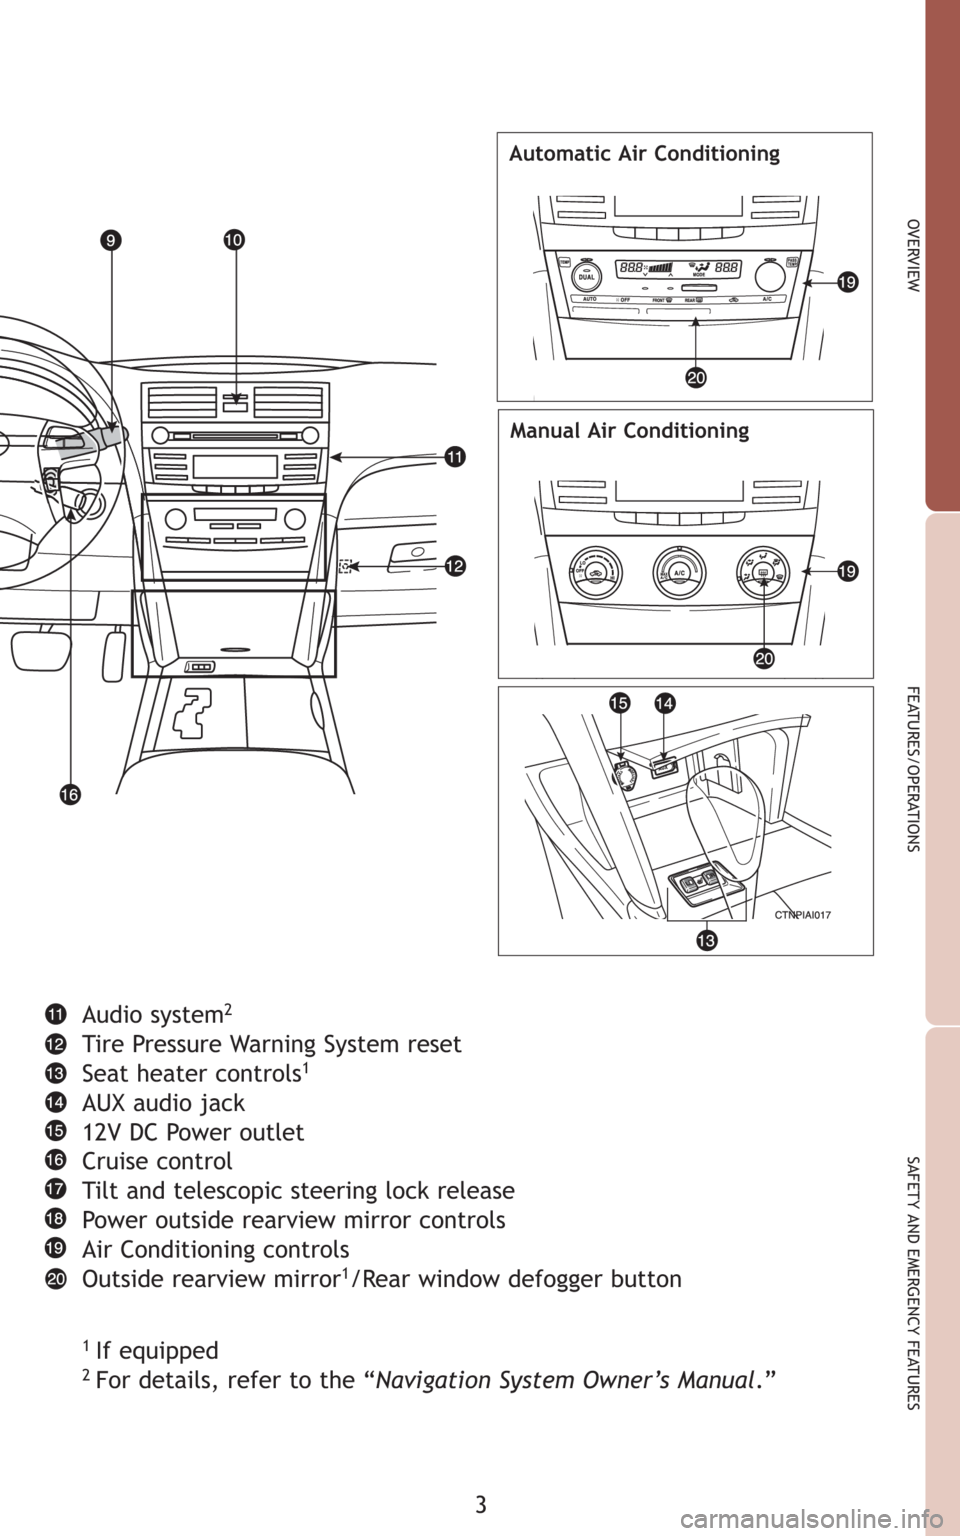 TOYOTA CAMRY 2009 XV40 / 8.G Quick Reference Guide, Page 5